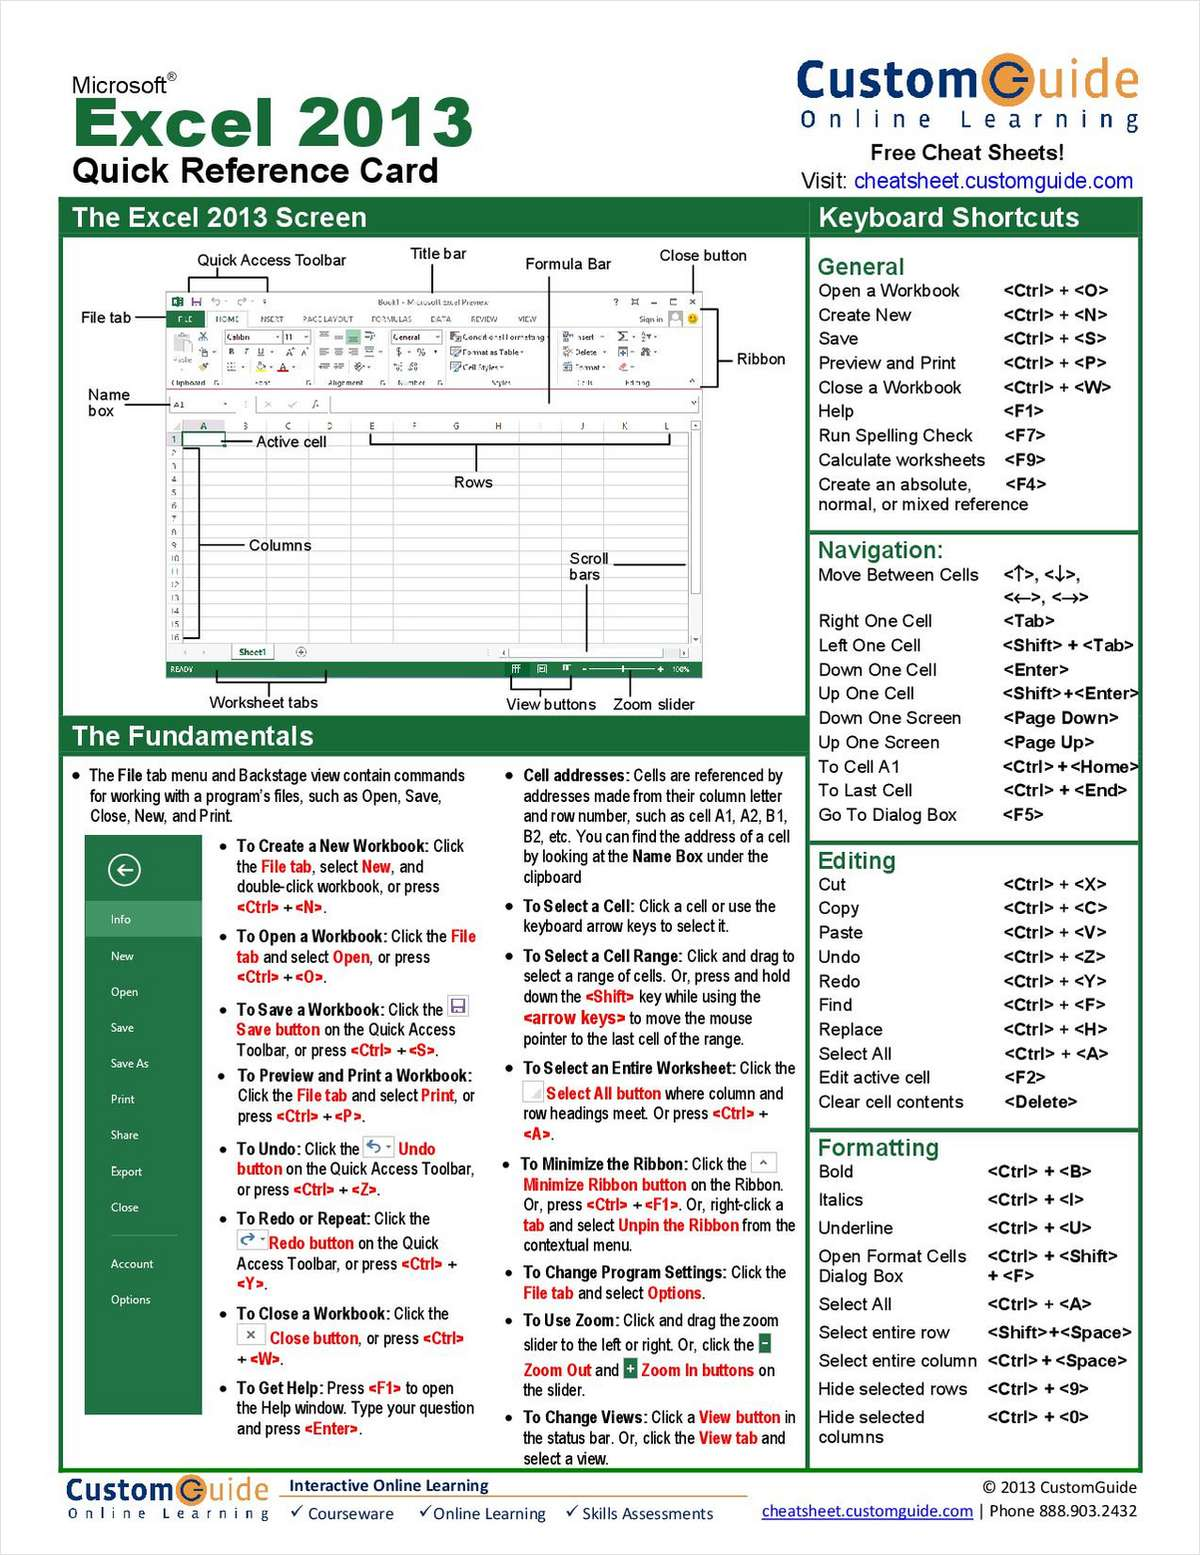 Microsoft Excel Quick Reference Guide Free Tips And Tricks Guide